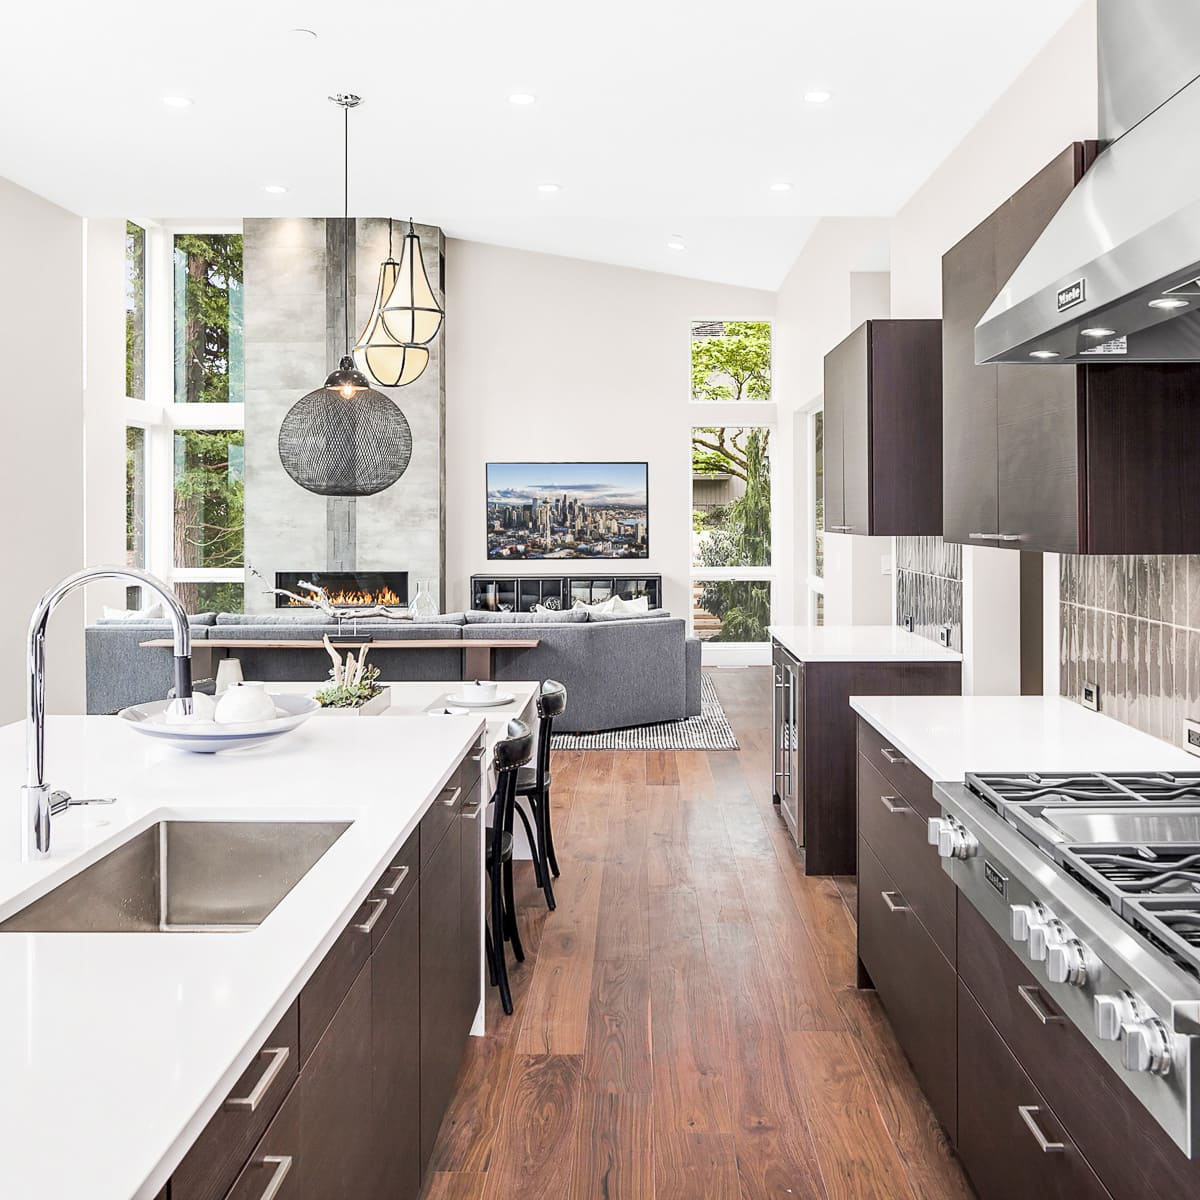 elegant and modern homes of the Summerwell development on Mercer Island